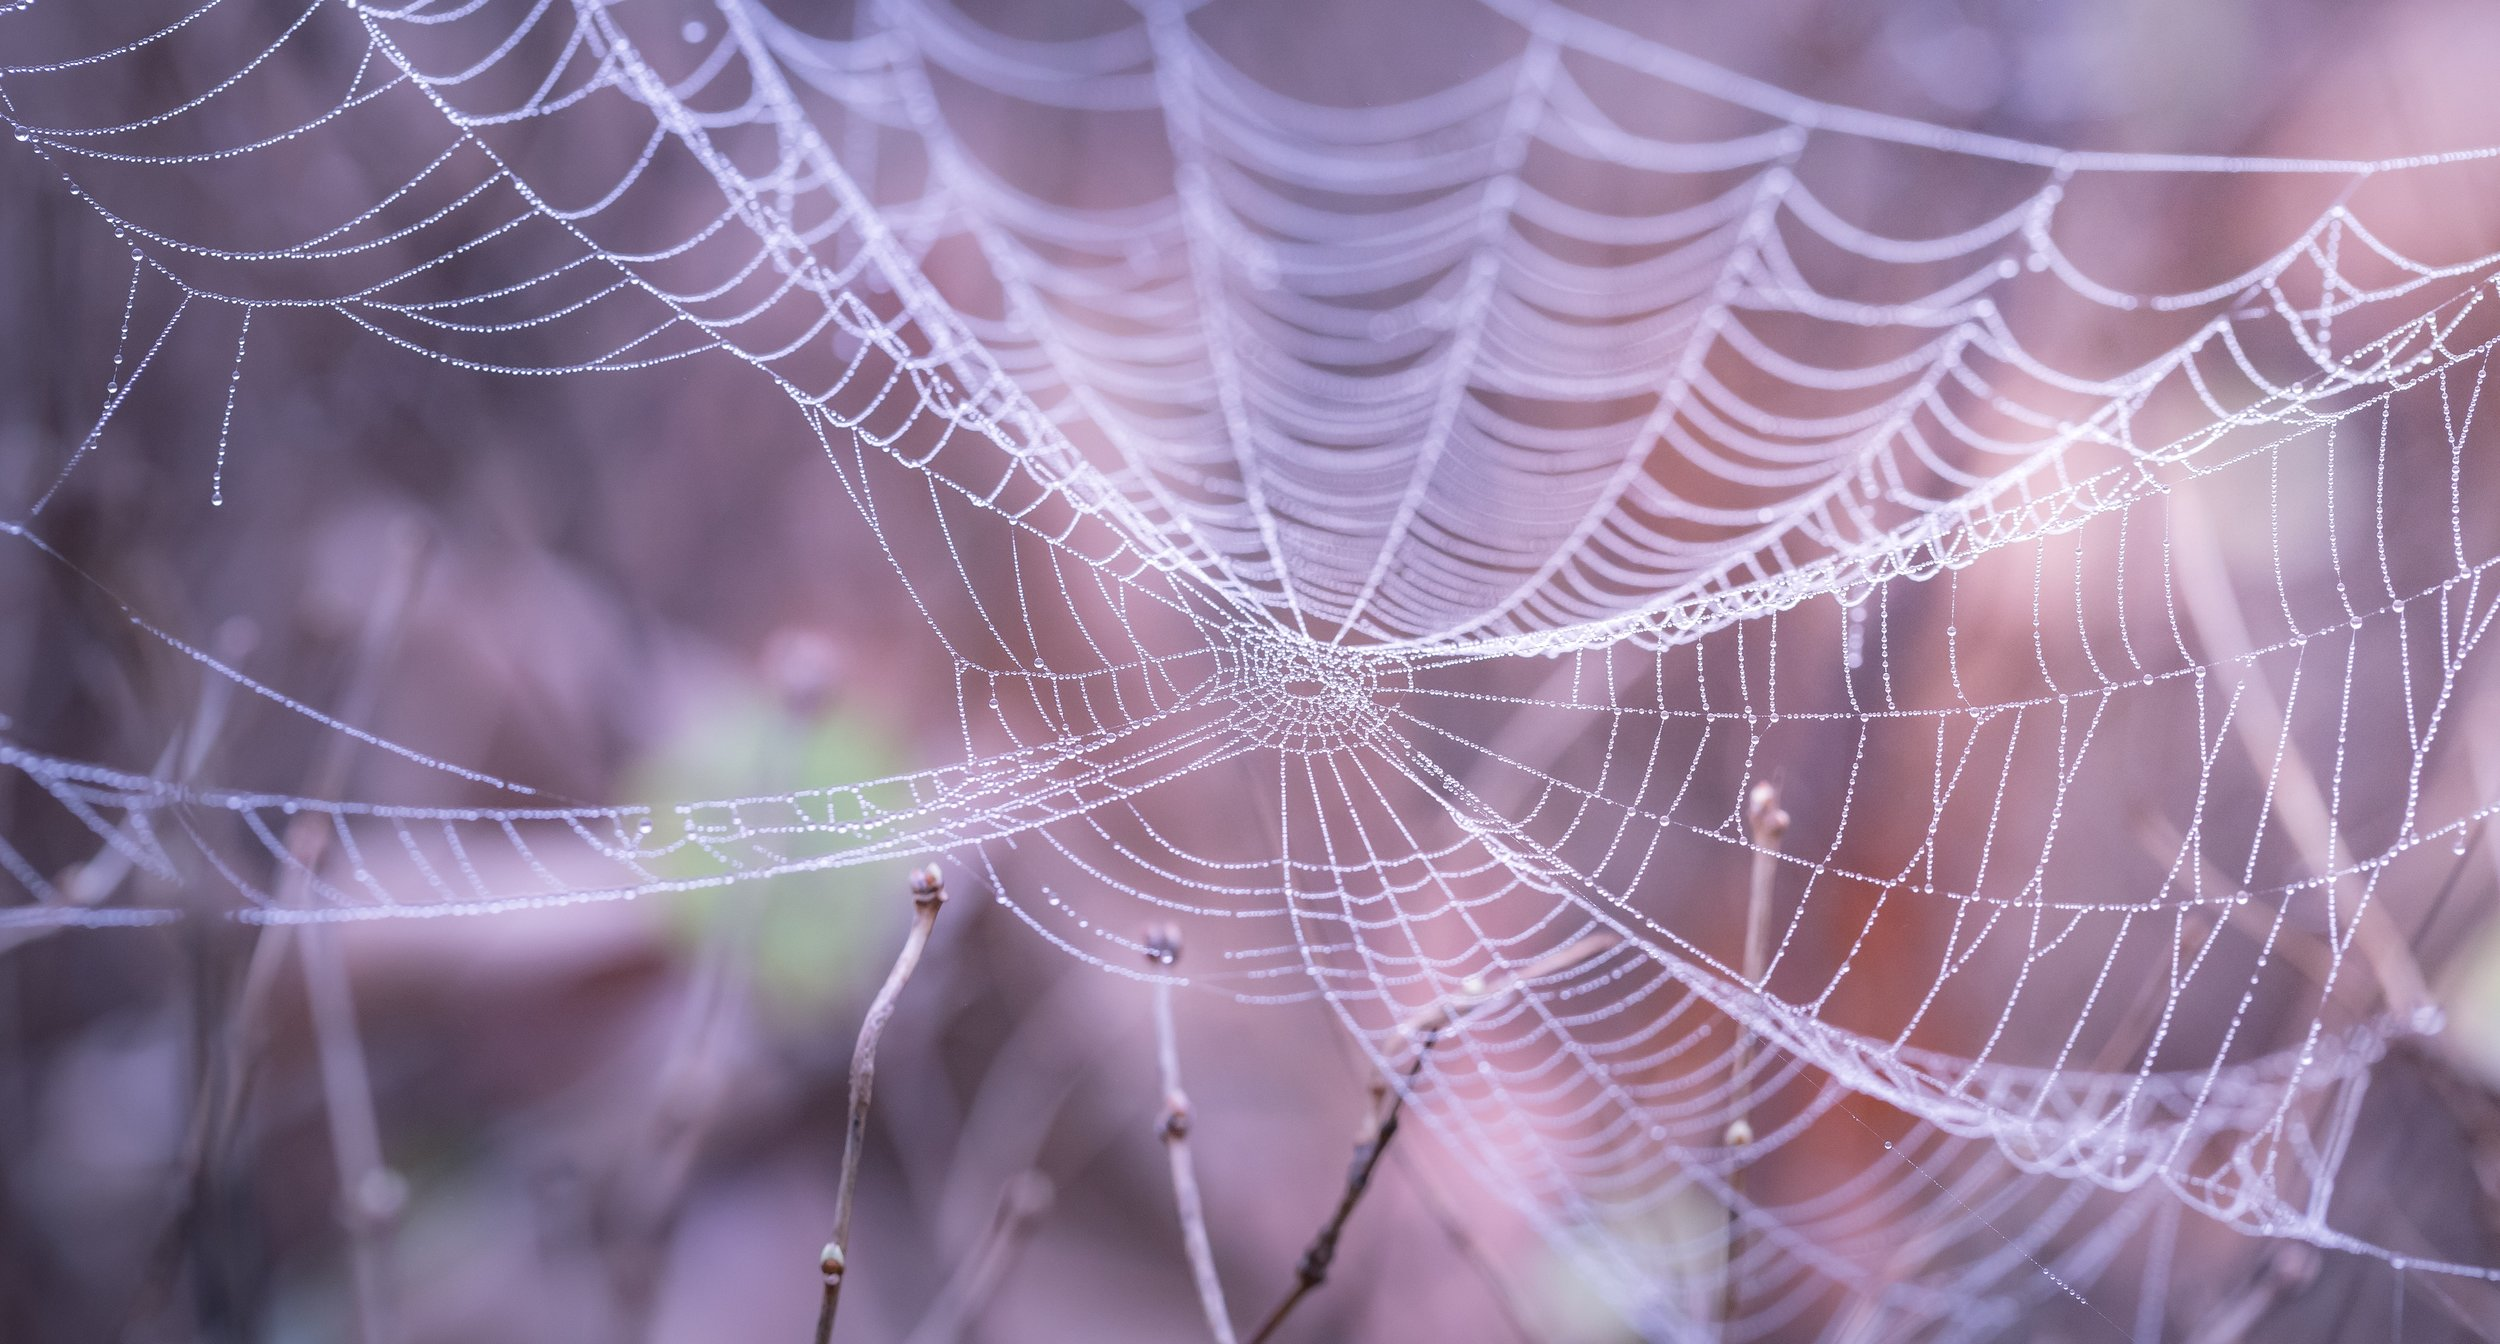 blur-close-up-cobweb-217877.jpg